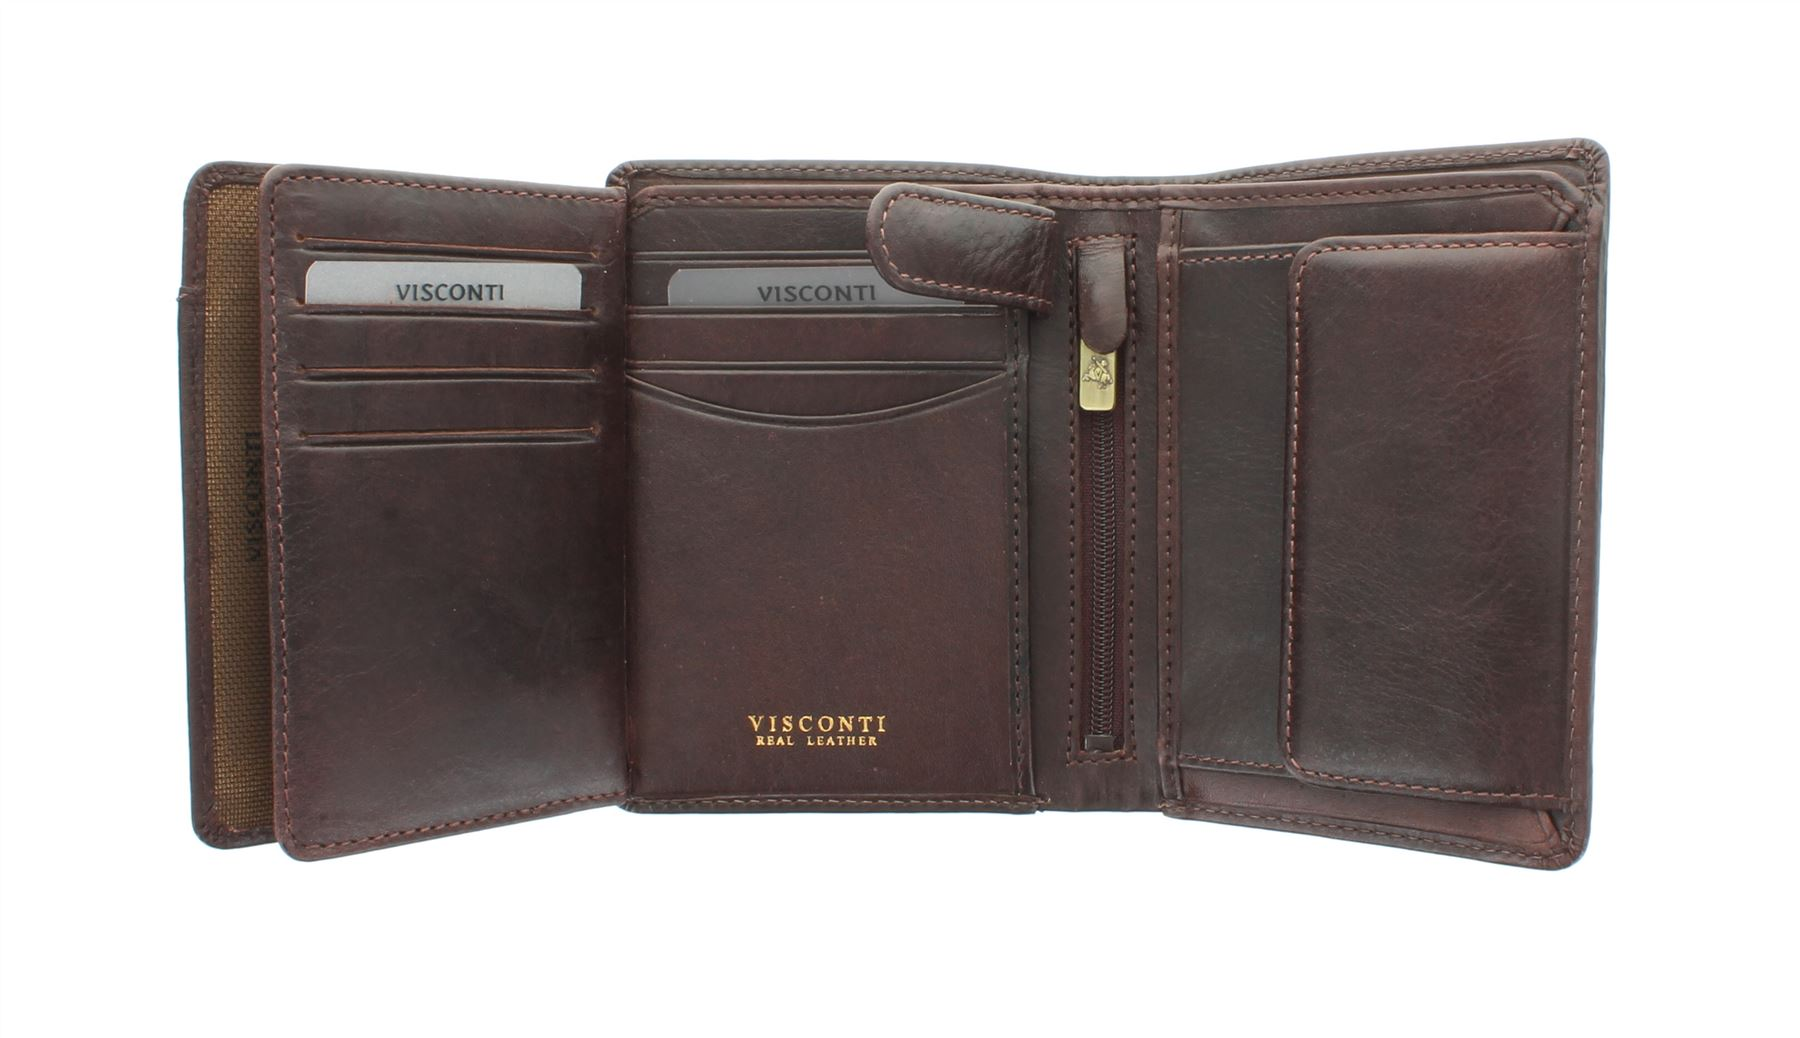 Visconti LUCCA Portefeuille cuir RFID Protection